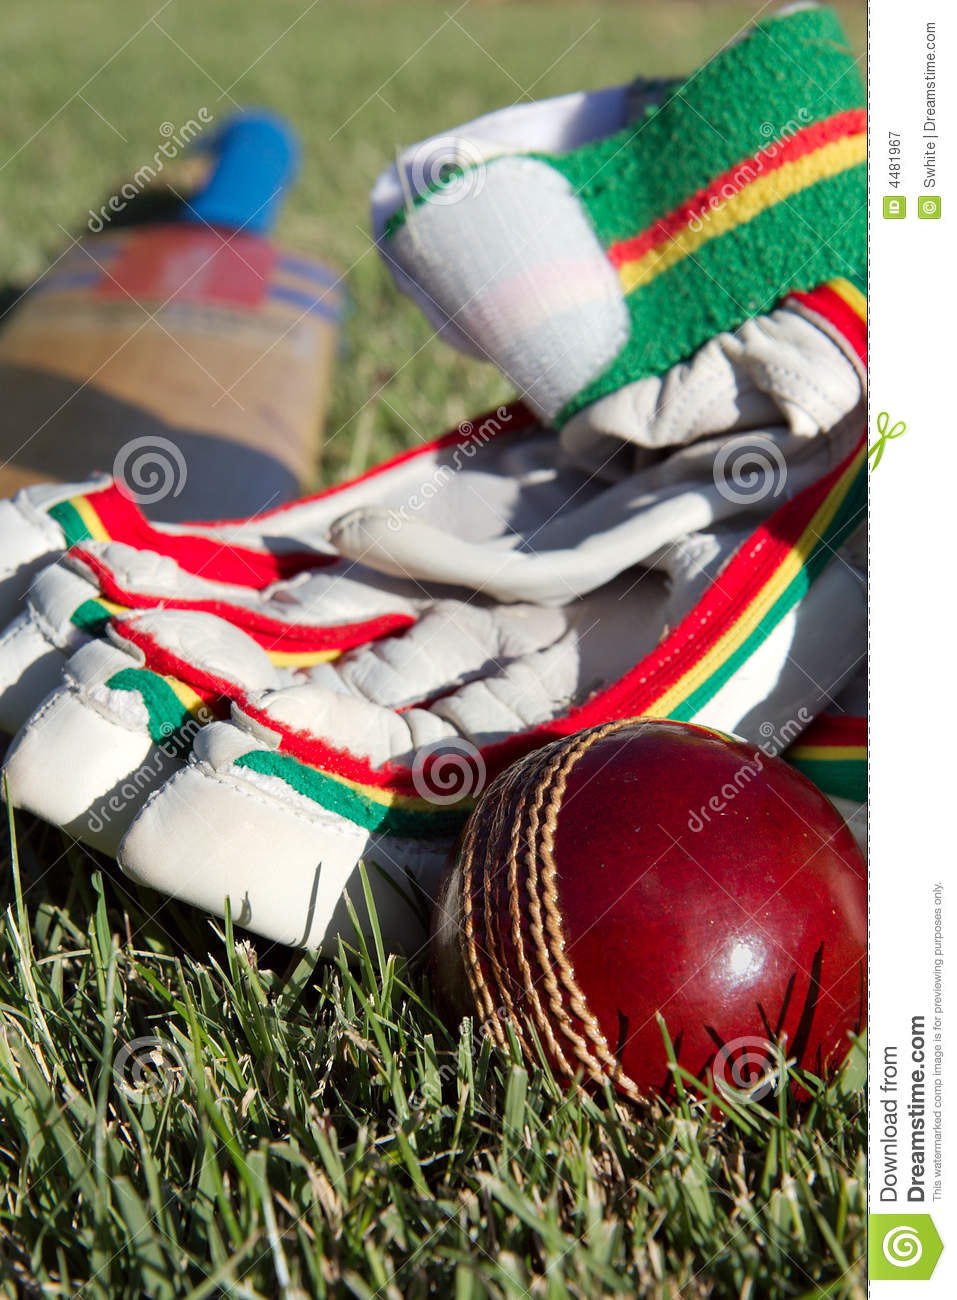 Cricket equipment.